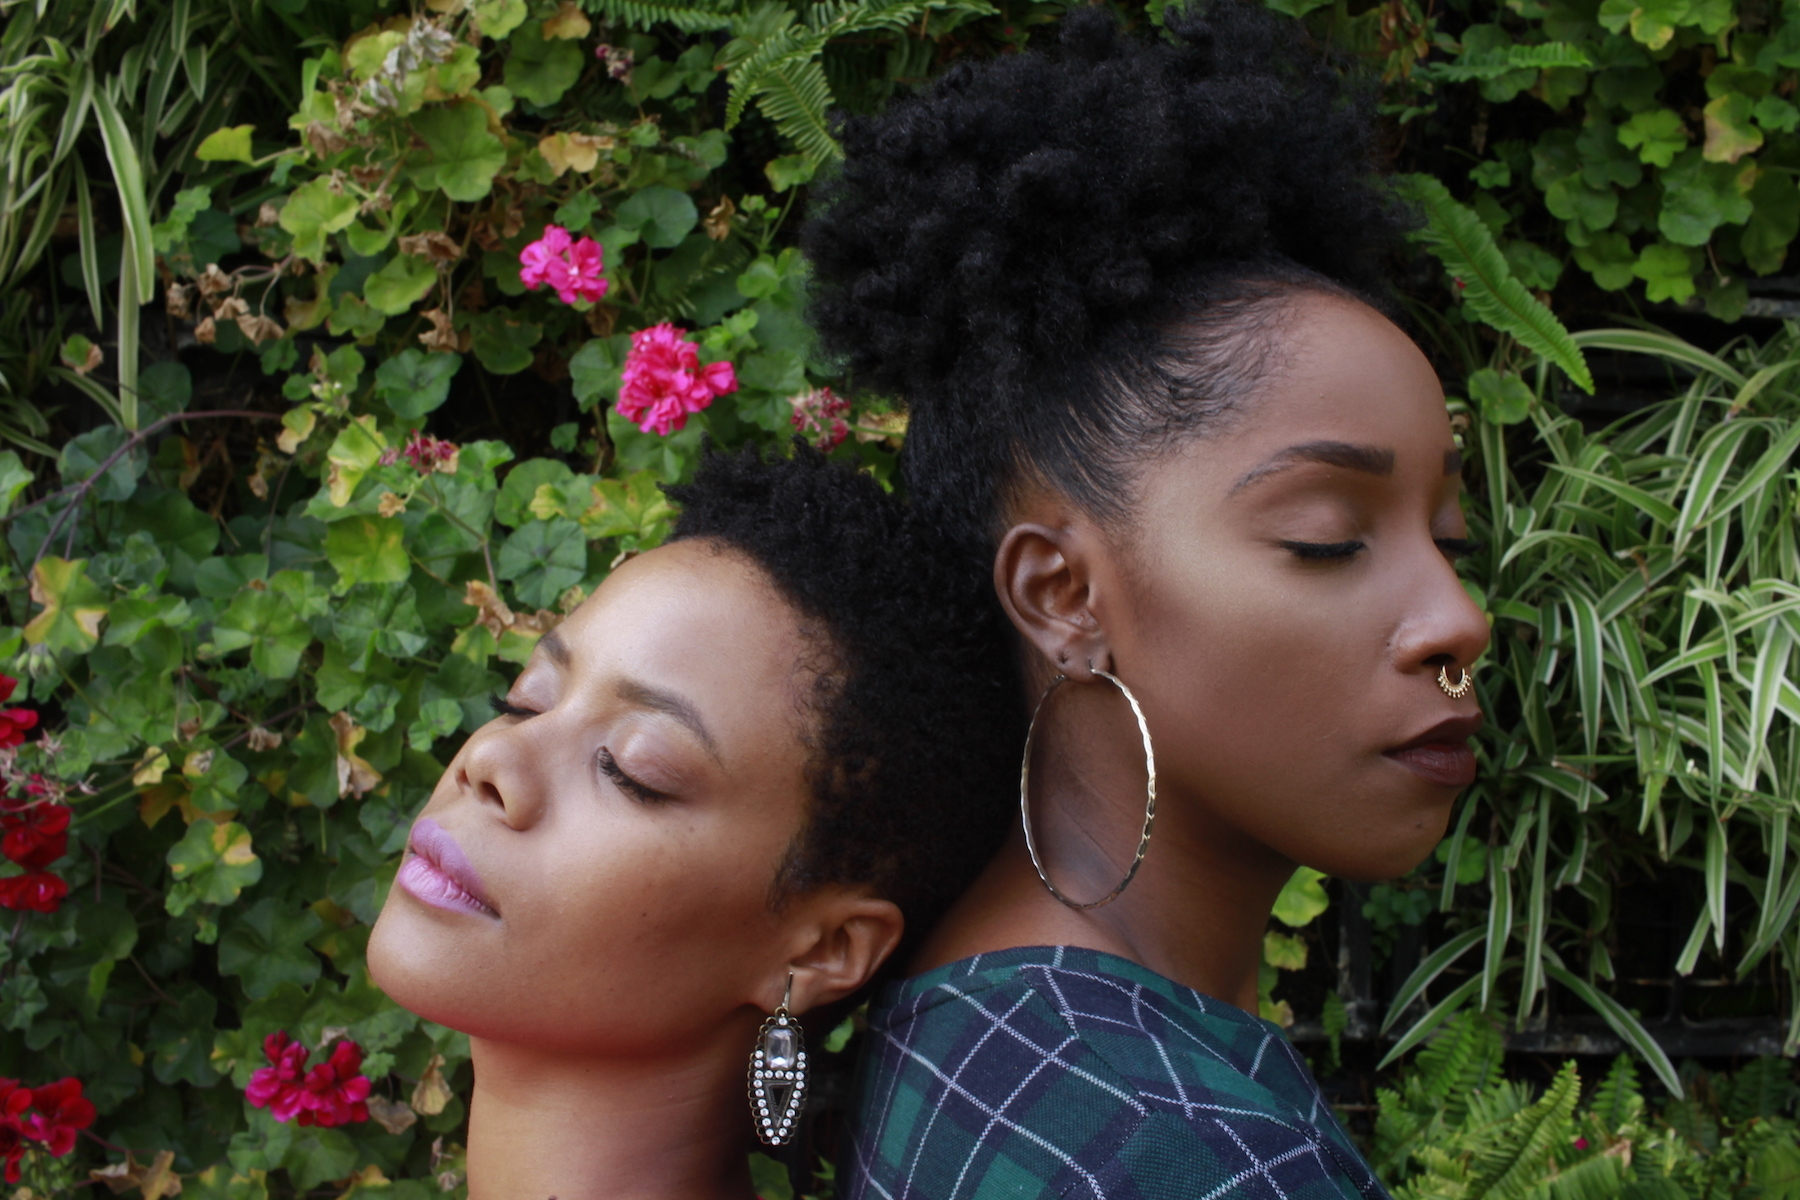 crwn is the hair magazine celebrating the everyday beauty of black